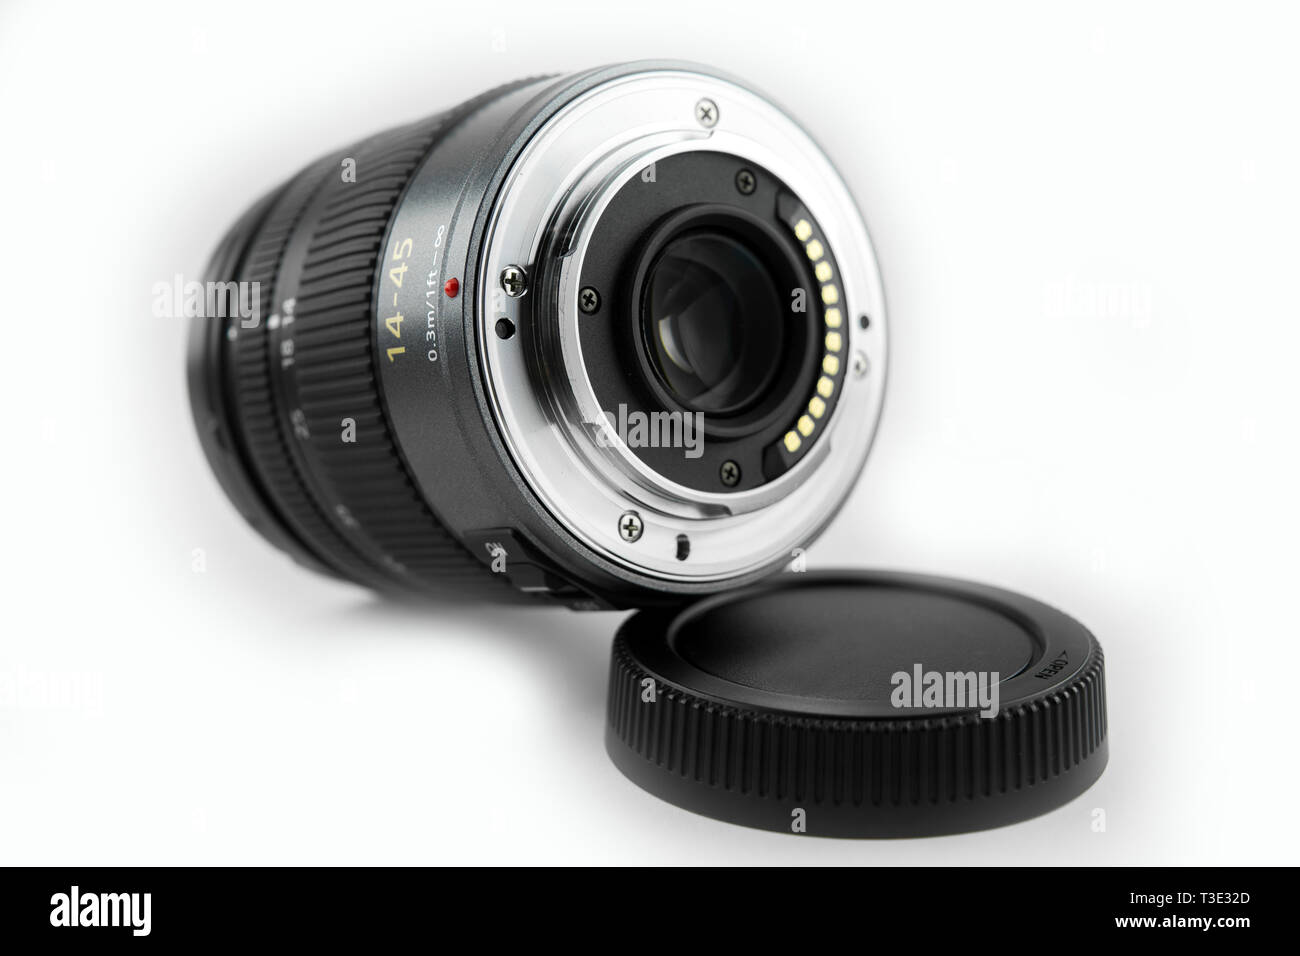 mirrorless dslr camera lens. close-up lens back surface with white background - Stock Image